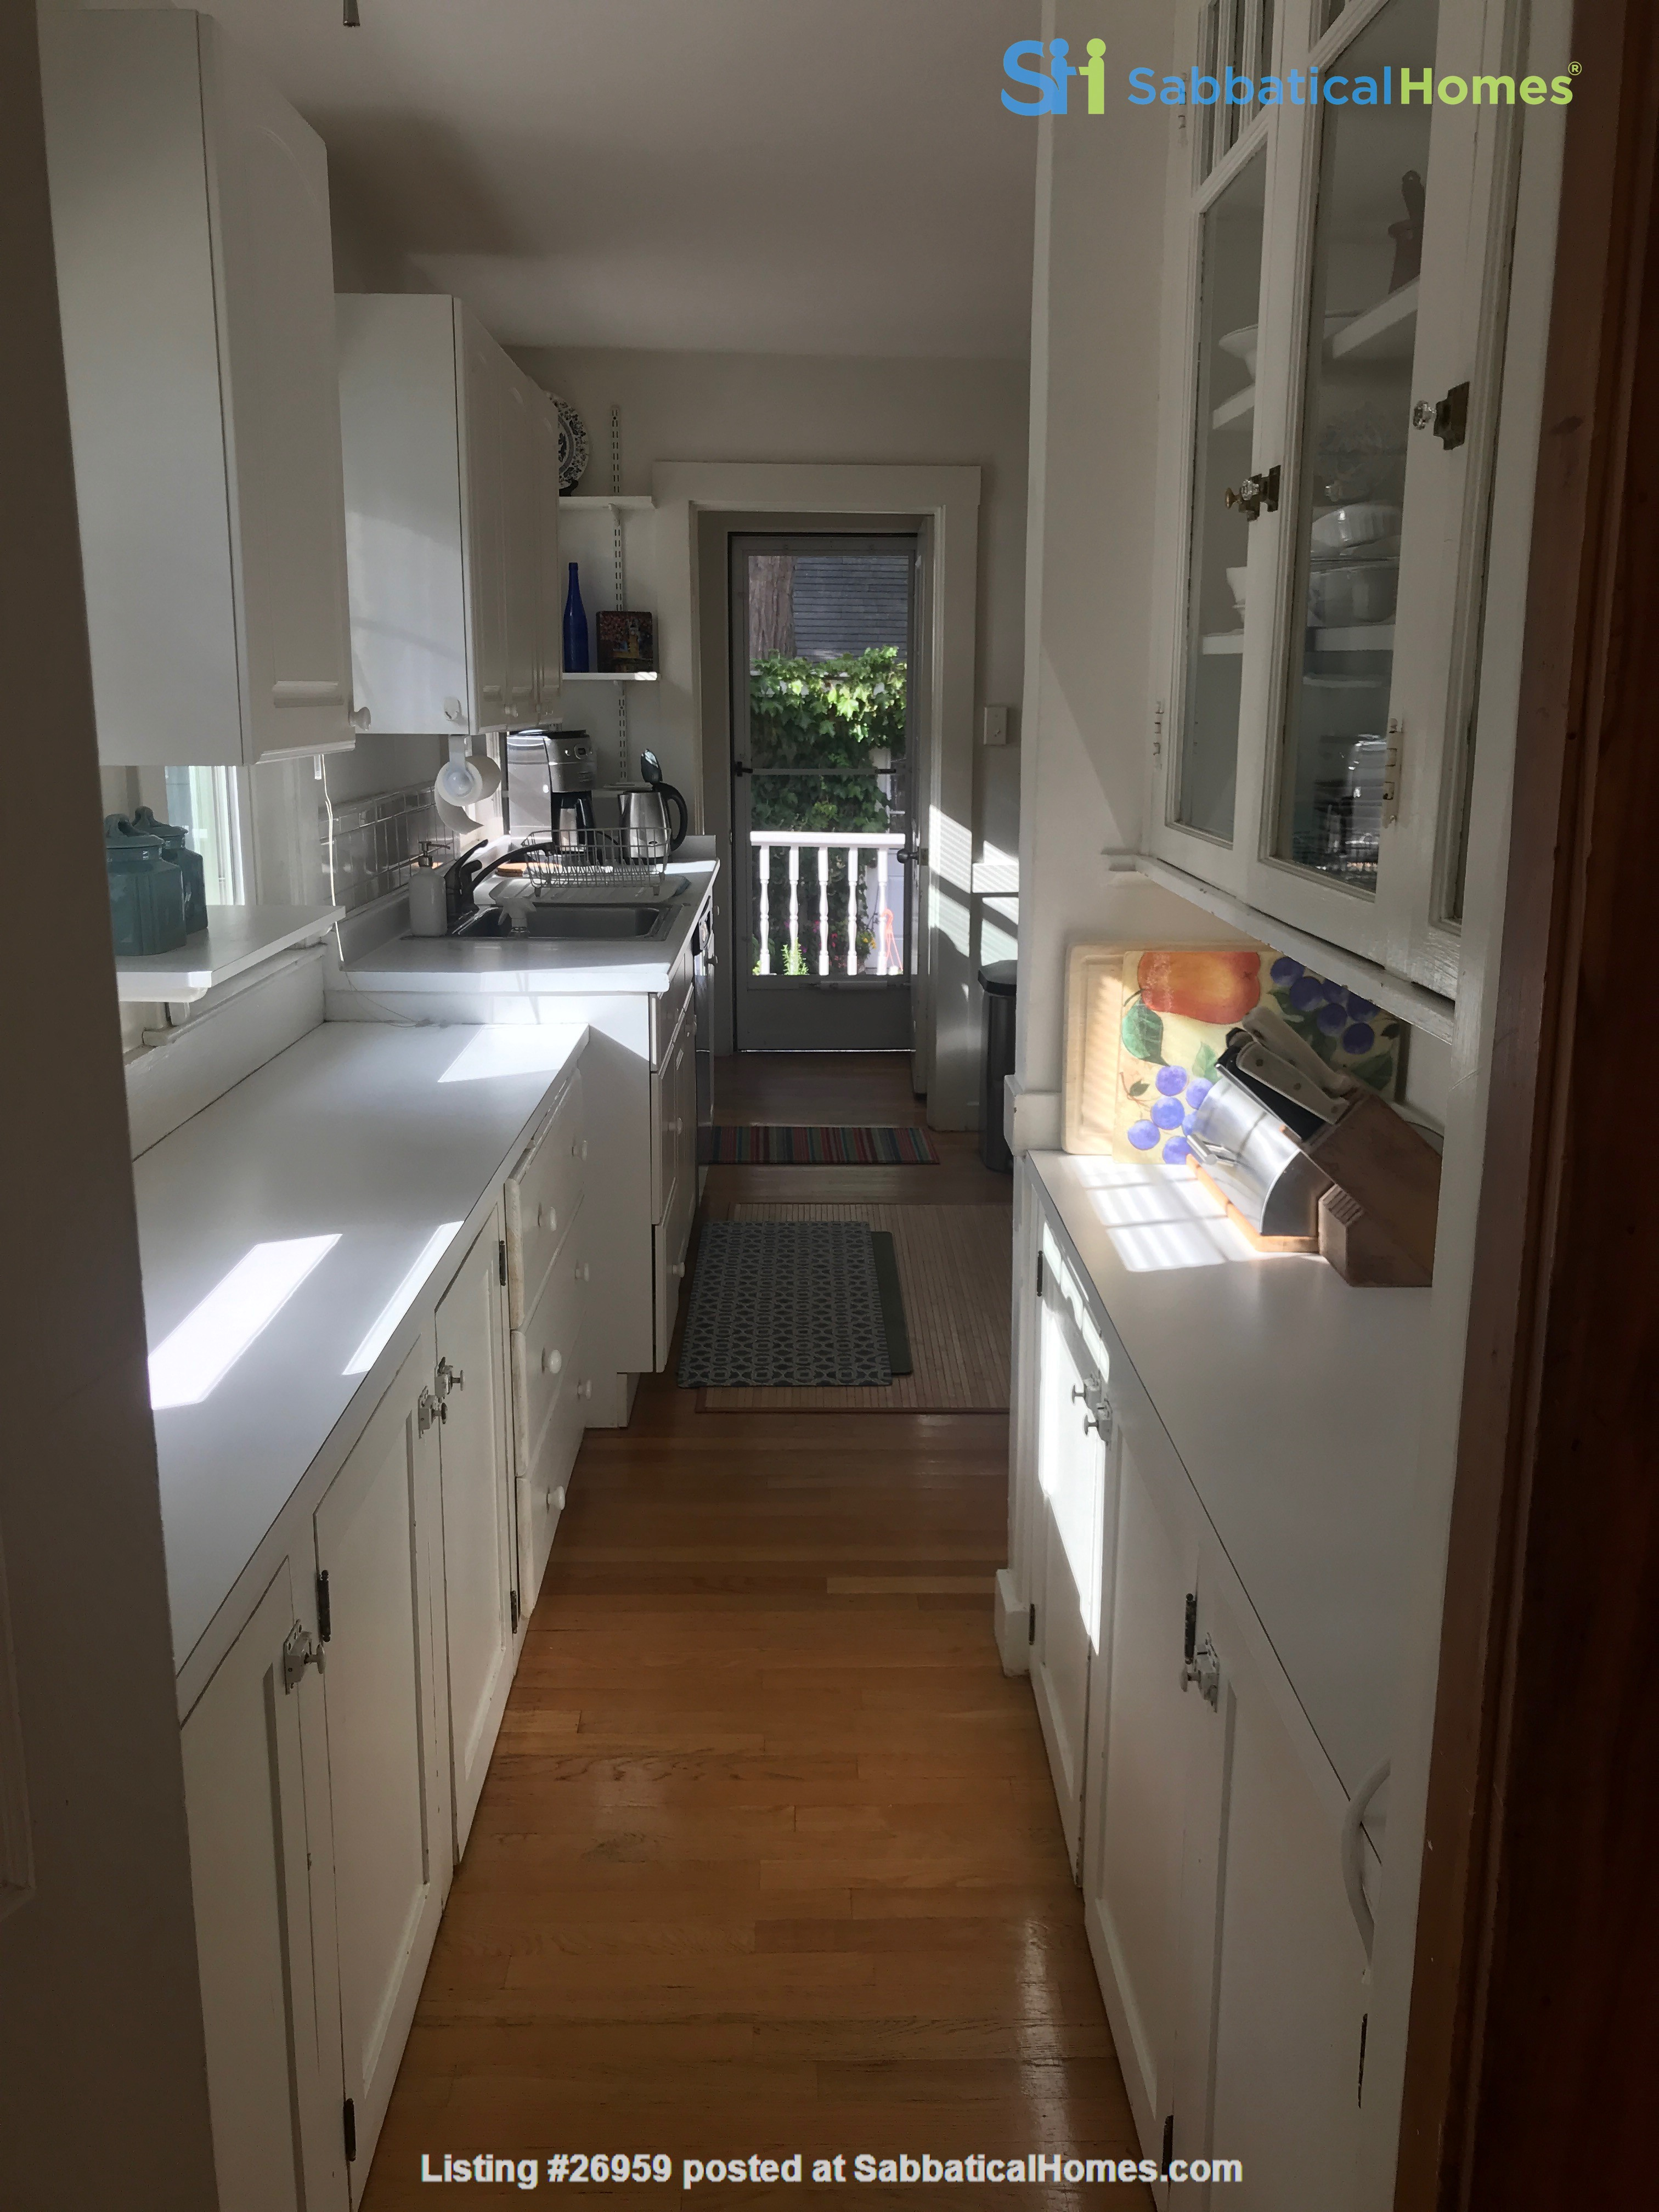 Furnished, Sunny, 2-bdrm apt 2.5 miles to Hrvd Sq., quiet safe neighborhood Home Rental in Belmont, Massachusetts, United States 6